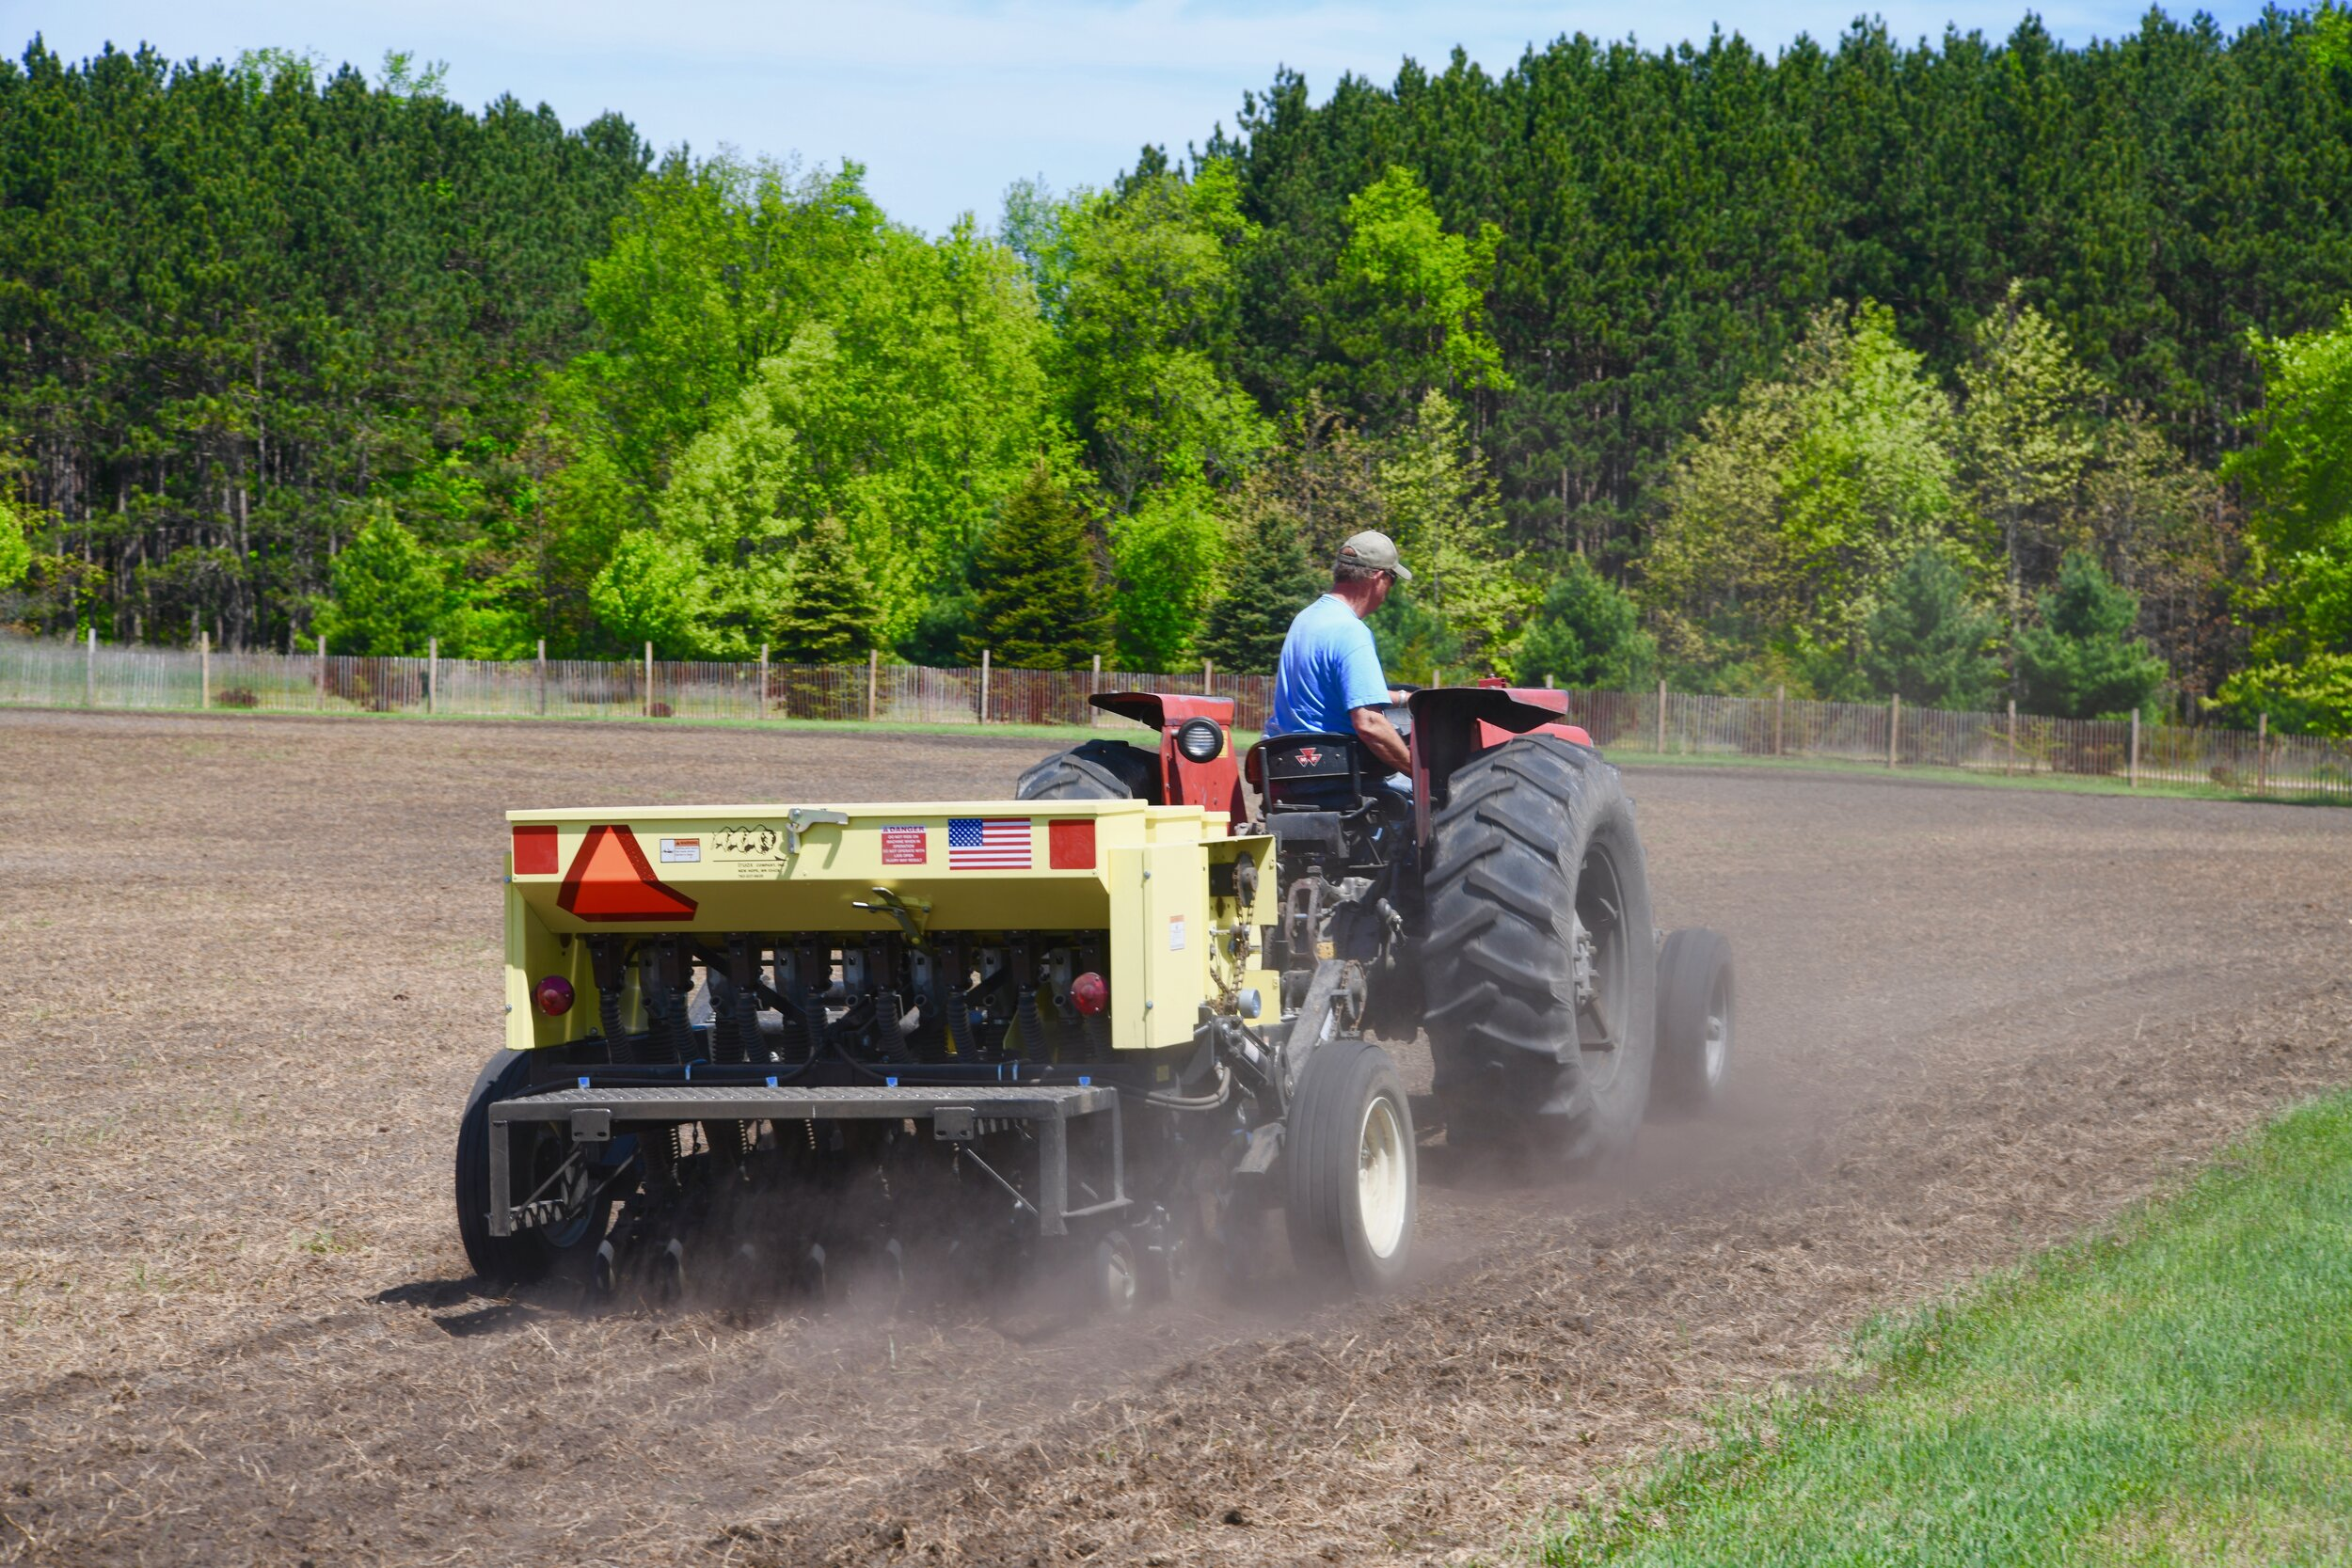 During Seed Installation - Calibration and seed depth placement is critical to the success of the planting.